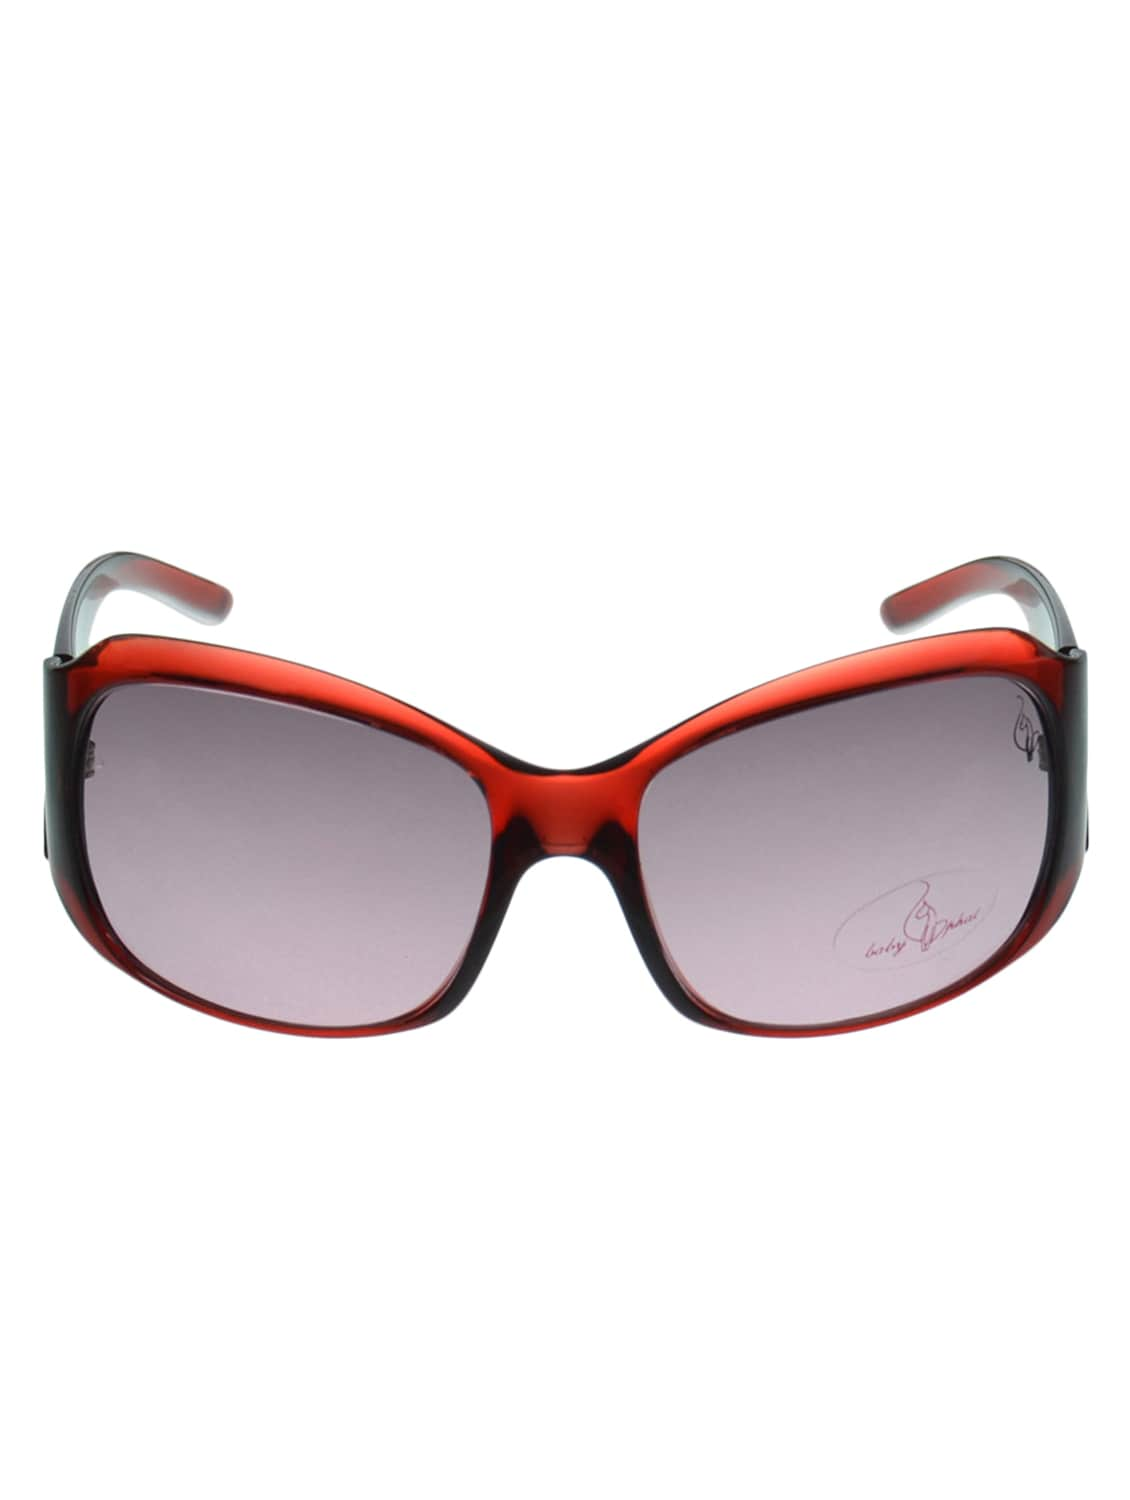 a45a00876f5 Buy Baby Phat Bp-2046-red Sunglass by Baby Phat - Online shopping for  Sunglasses in India